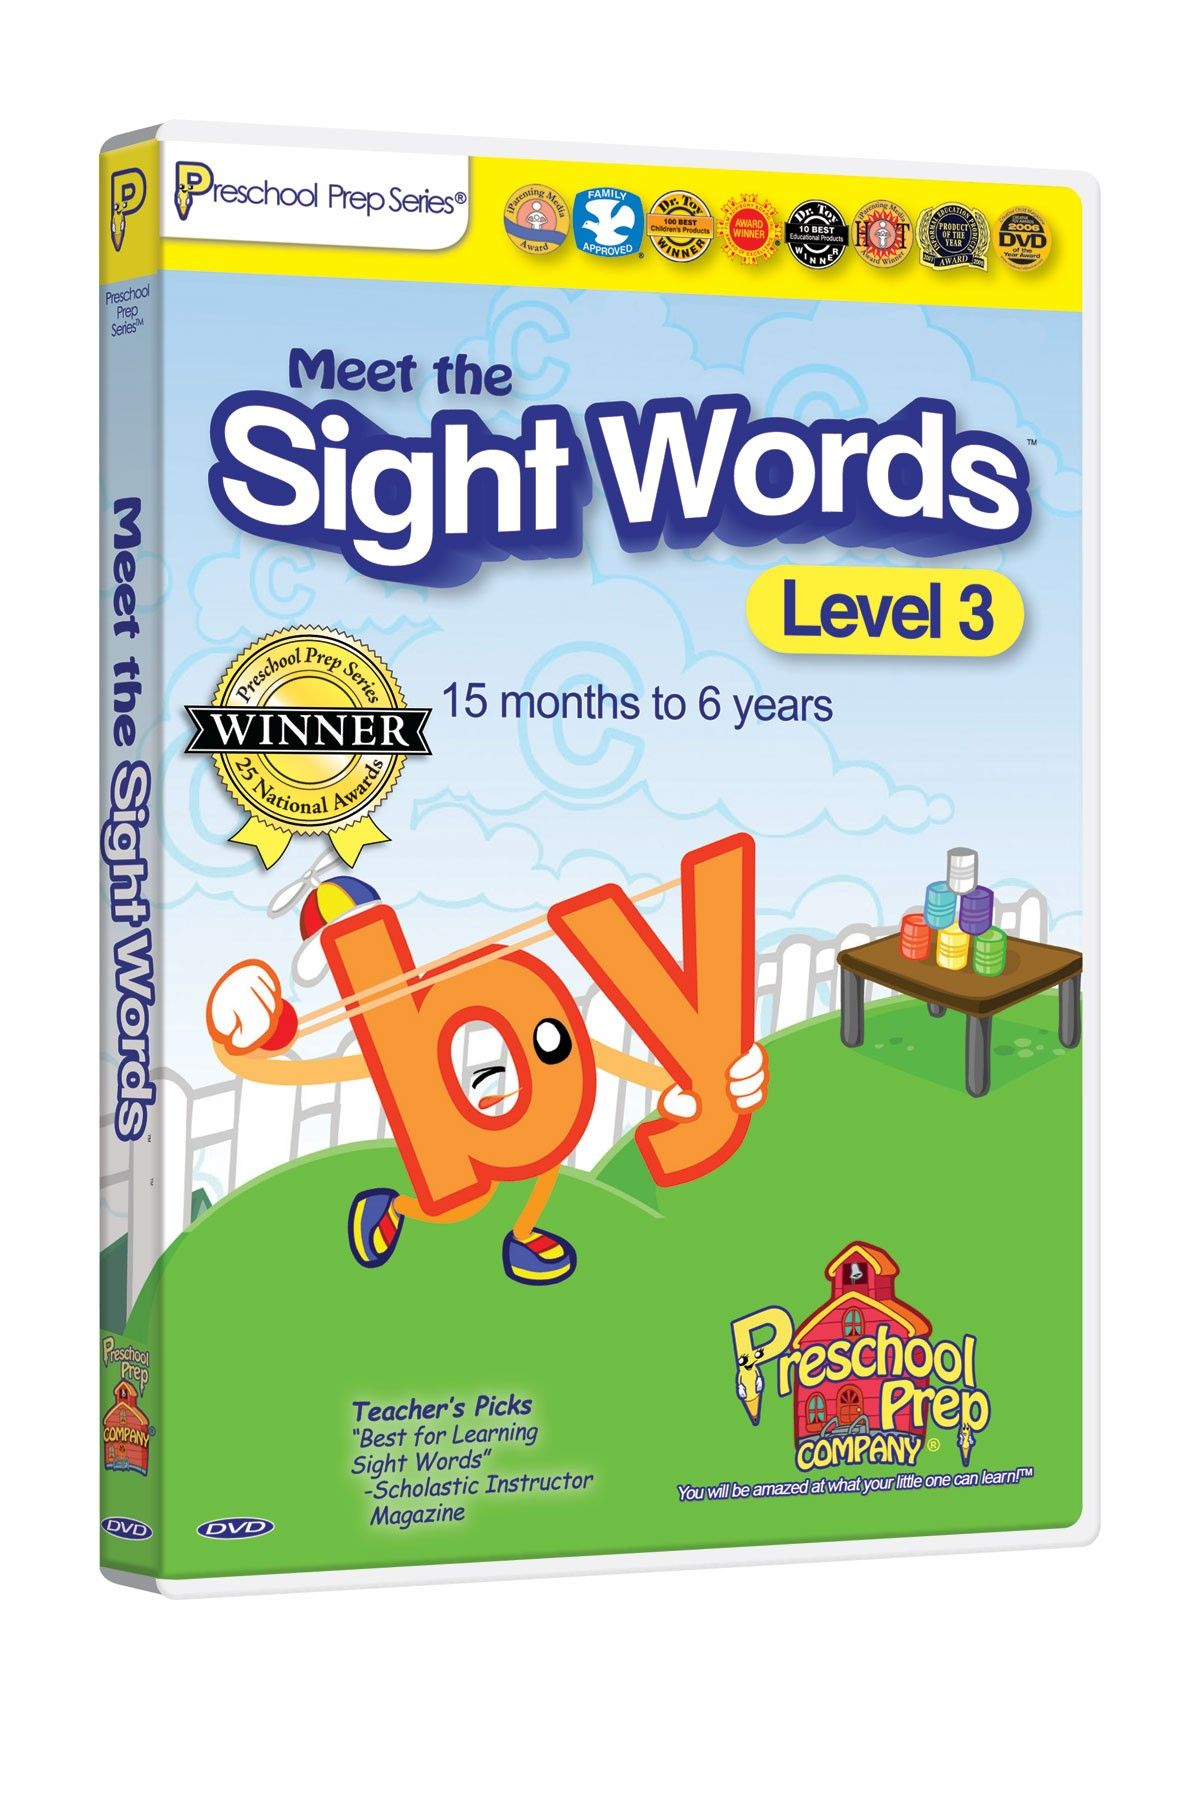 Preschool Prep Company Meet the Sight Words DVD - Level 3 | Ajin ...